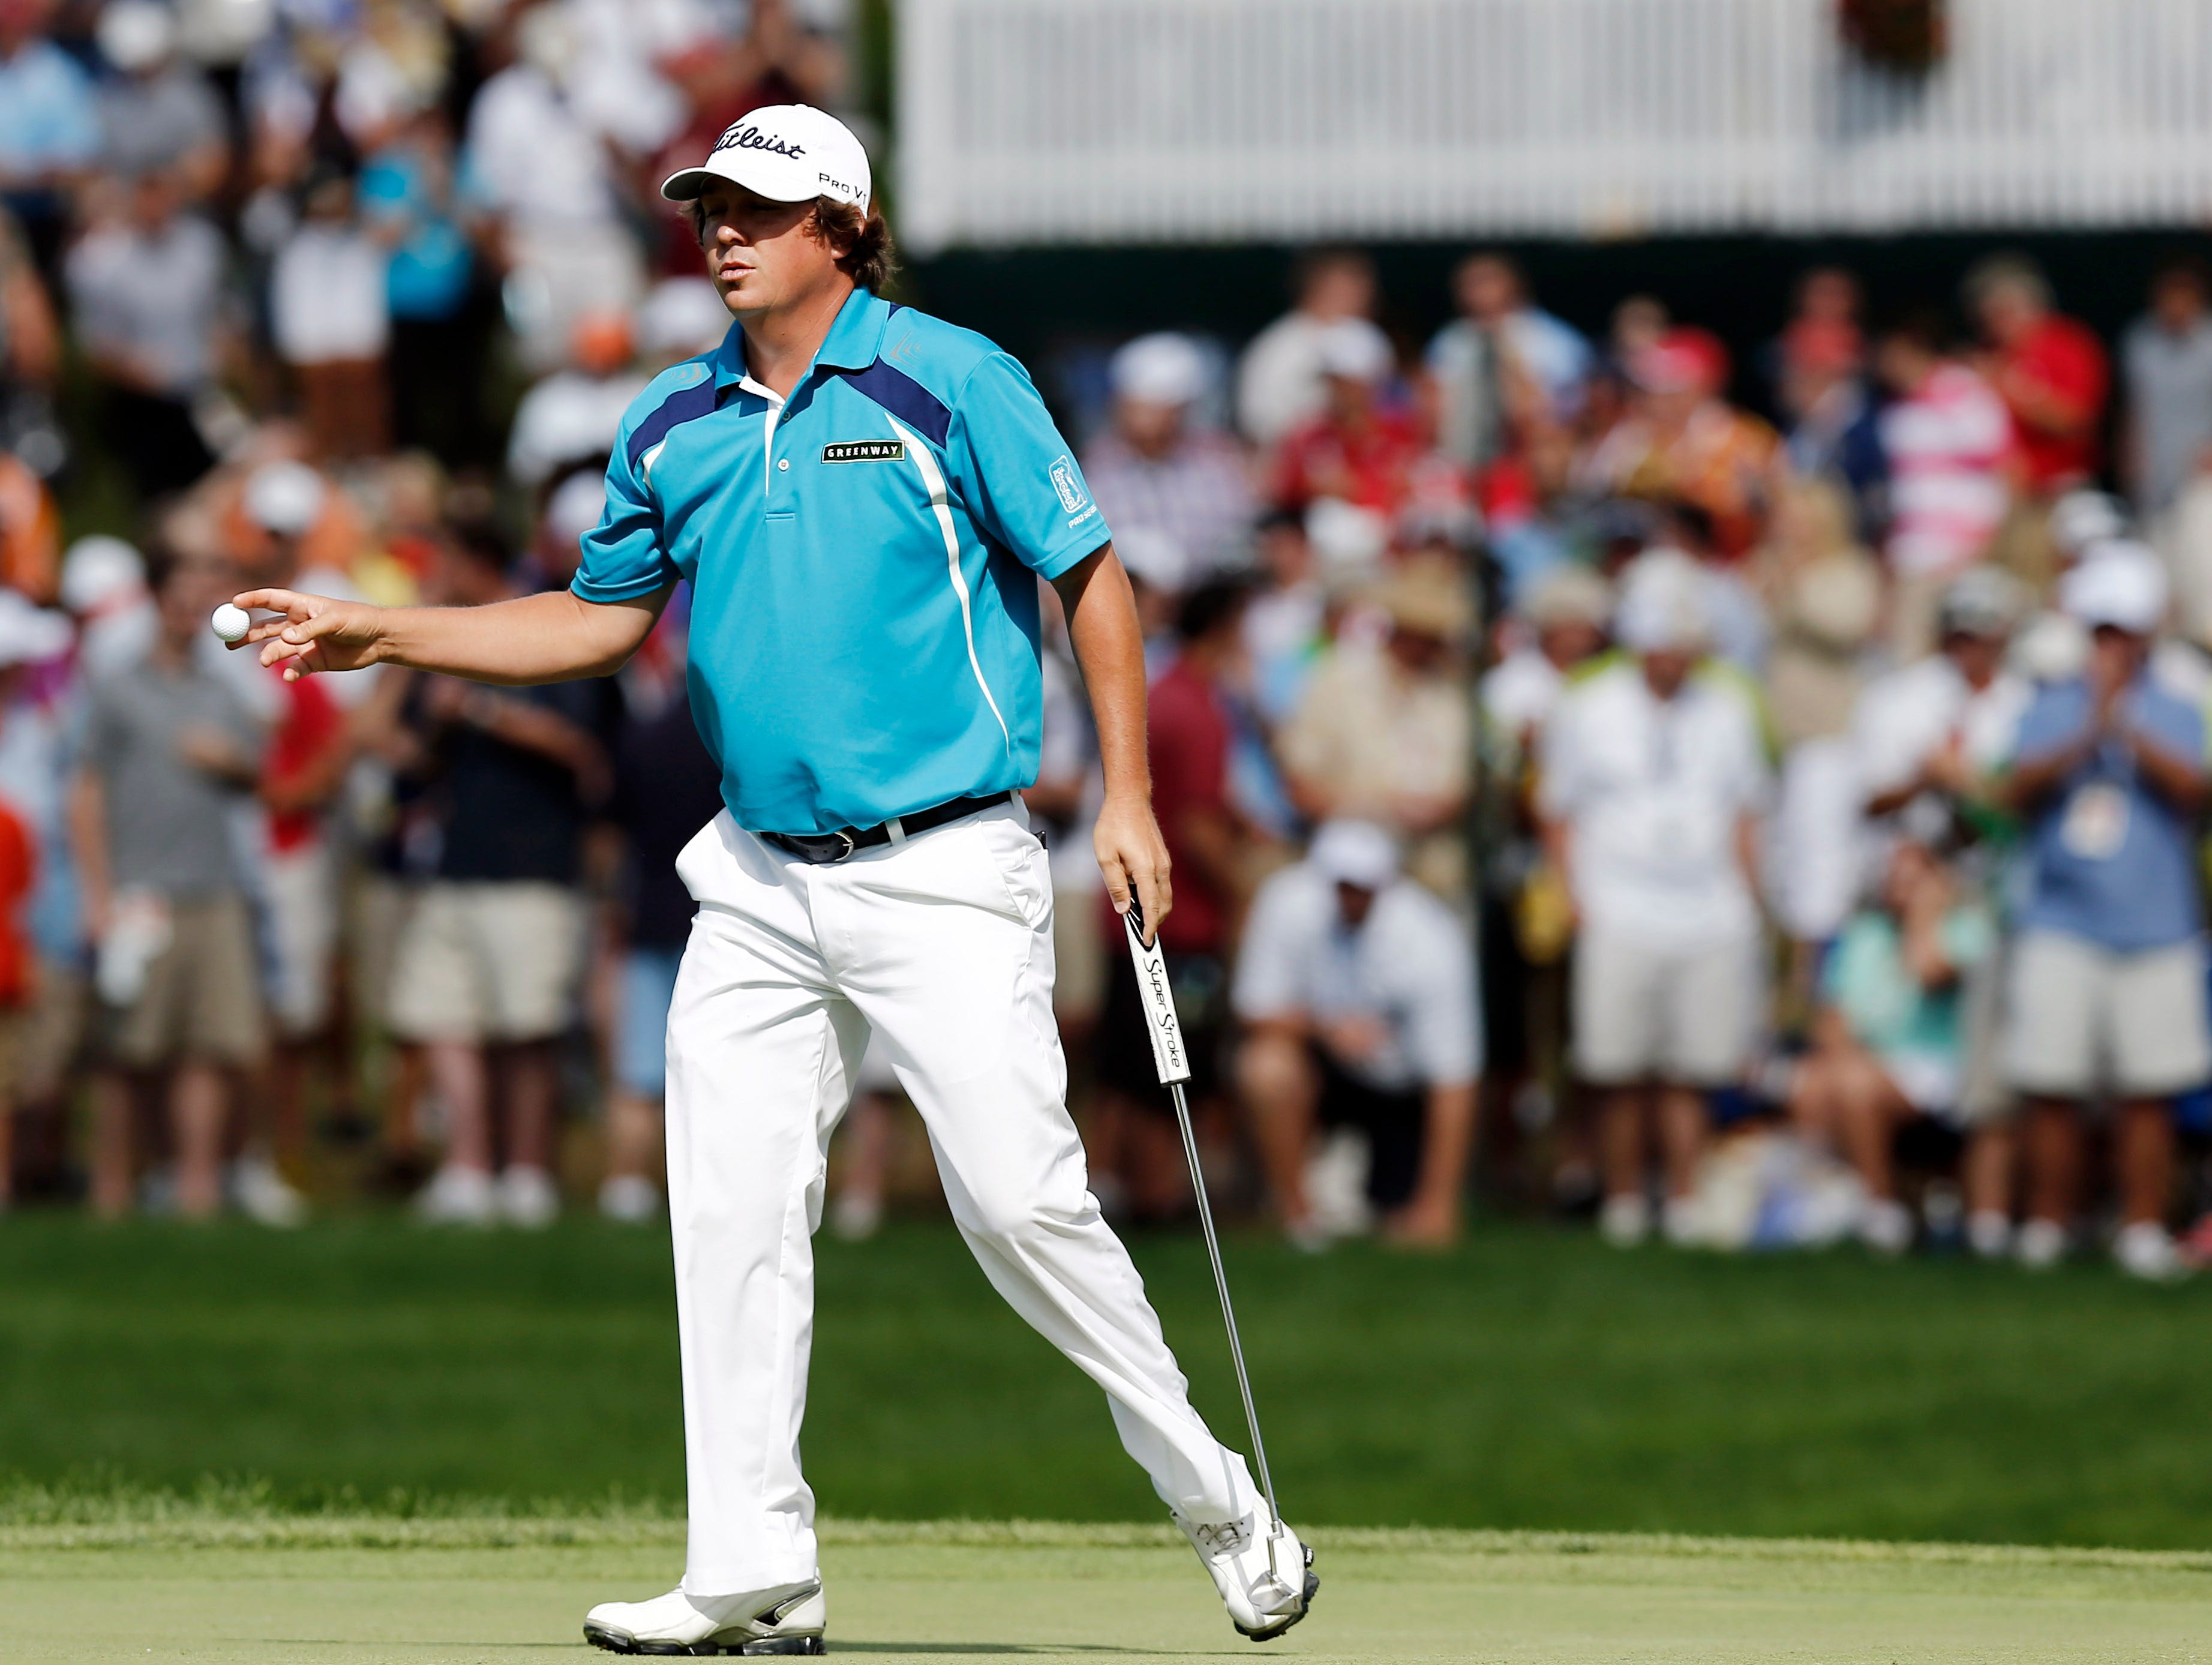 Jason Dufner grabs his ball on the No. 6 hole.